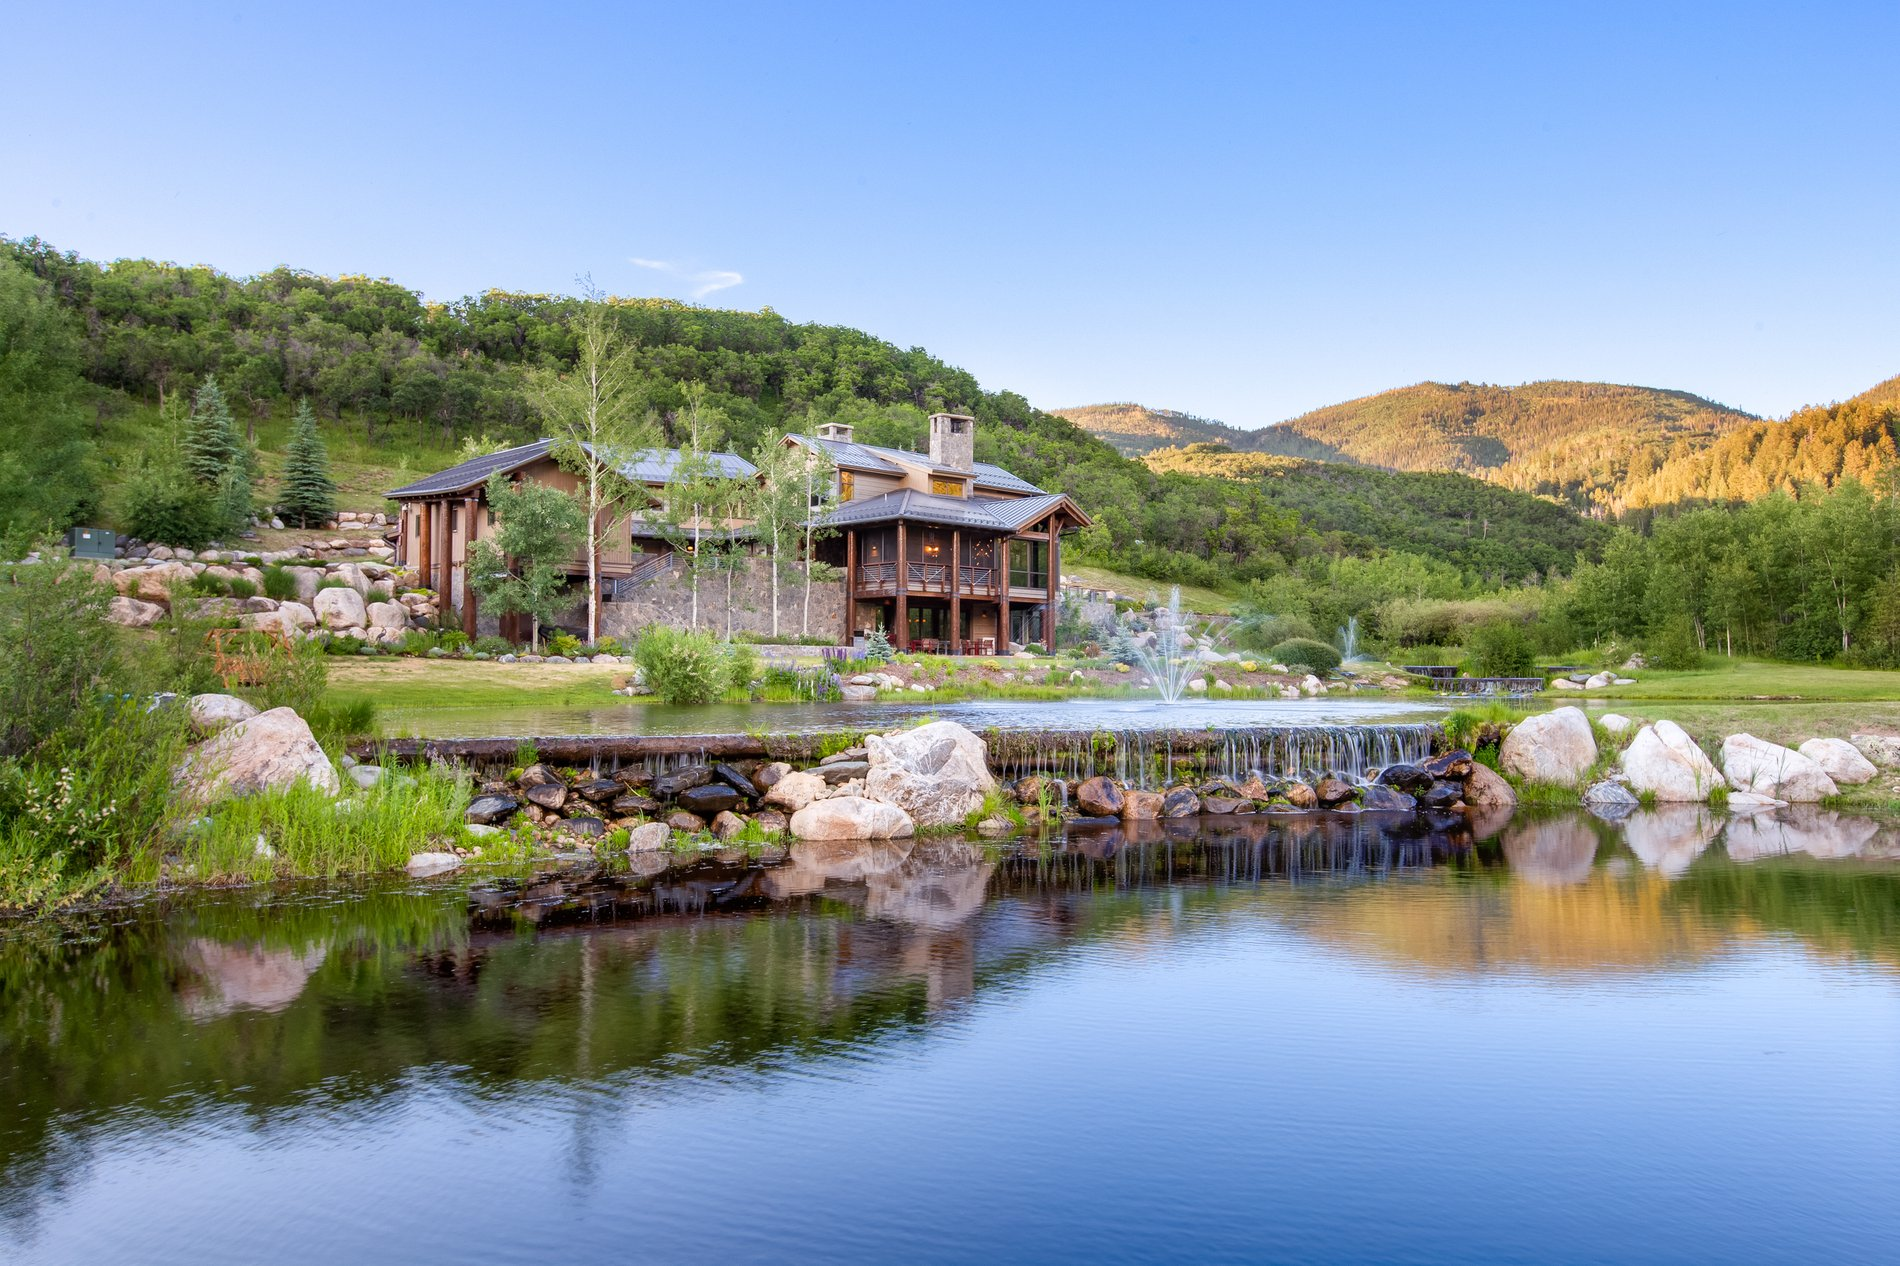 Lakeside view of this beautiful Colorado countryside home.